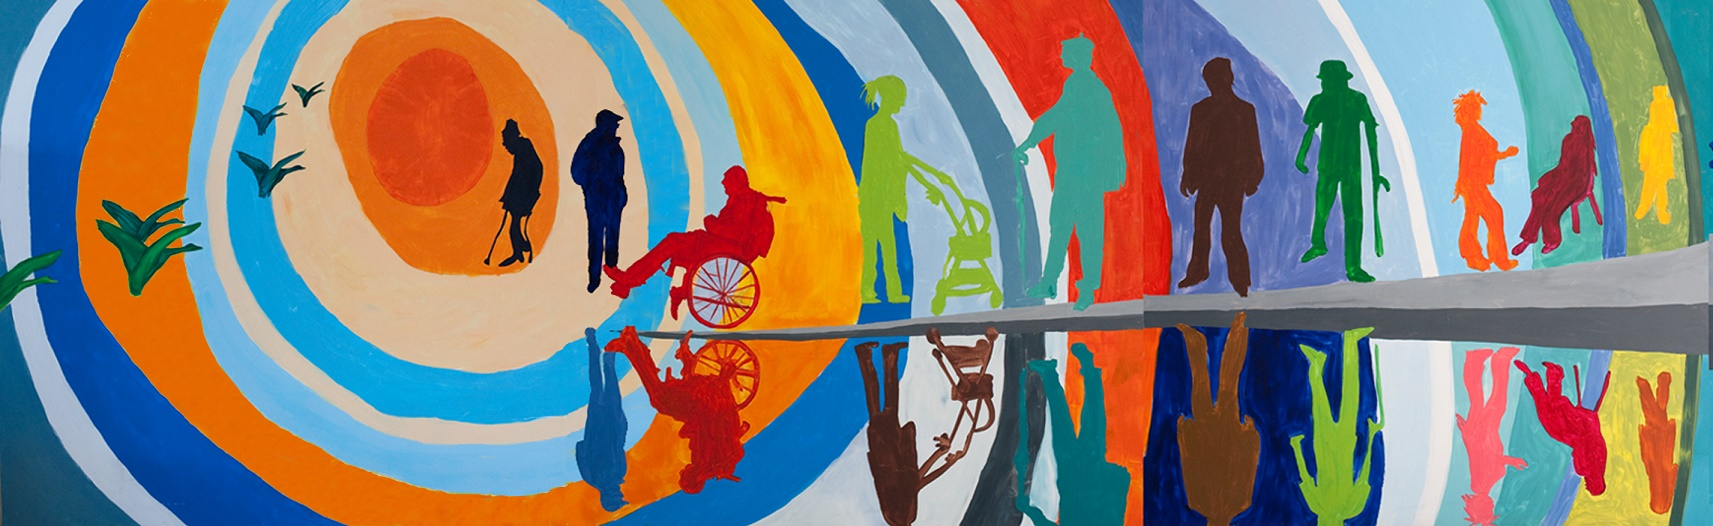 Picture painted by members of Headway showing community of disabled adults